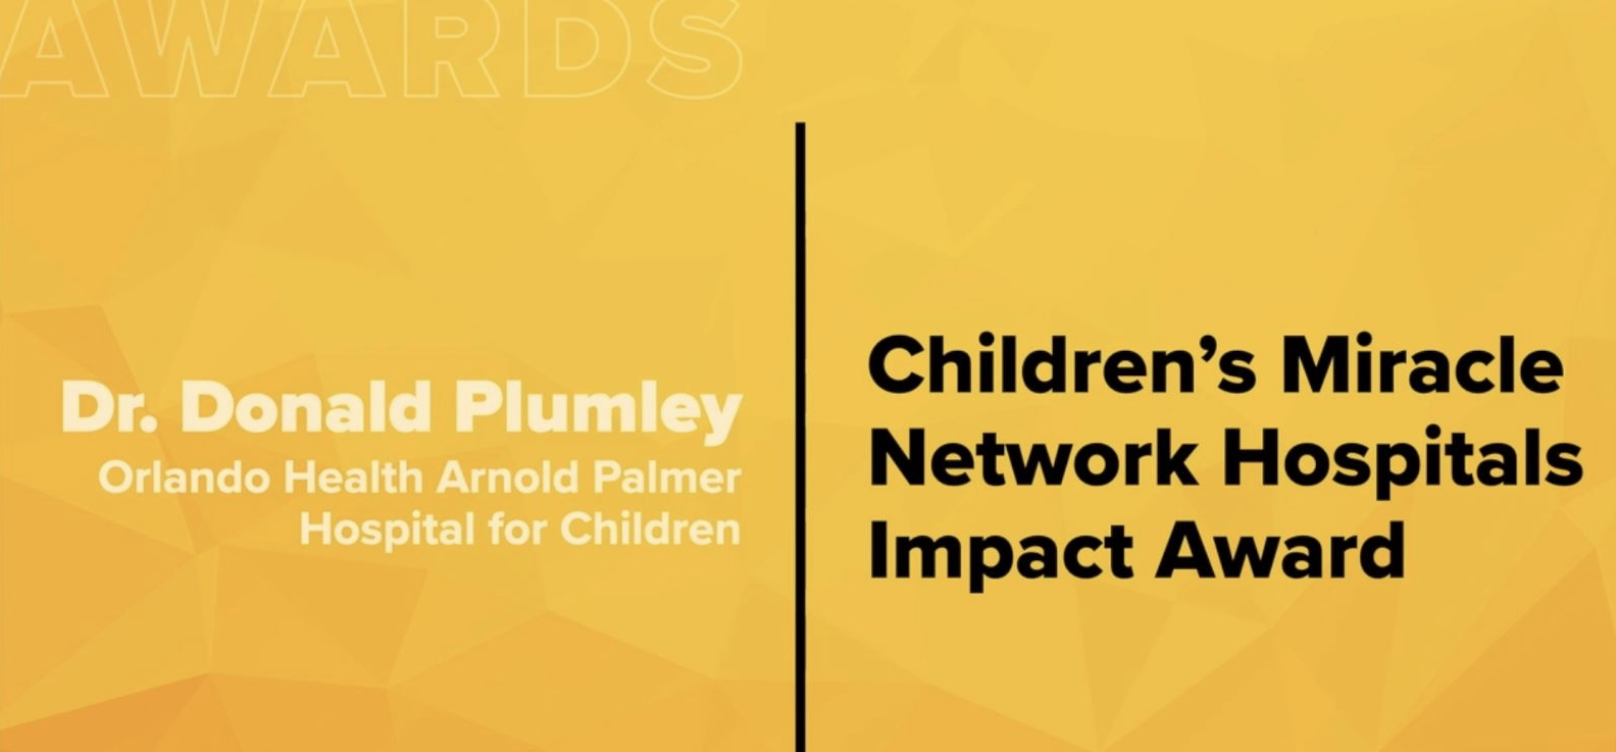 Dr. Donald Plumley Recognized with Children's Miracle Network Hospitals US Impact Award